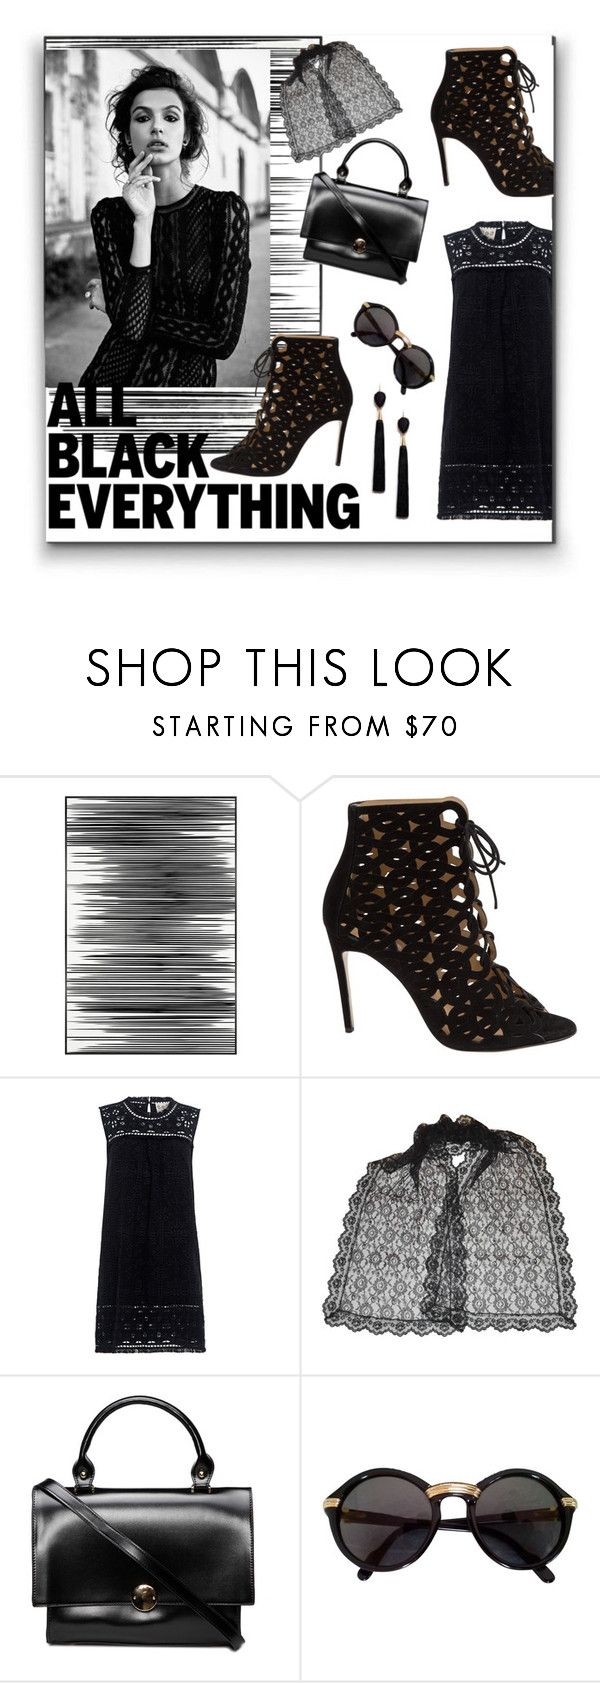 """All Black Everything"" by kittenkute ❤ liked on Polyvore featuring Art Addiction, Bionda Castana, Sea, New York, Cartier, Mignonne Gavigan, monochrome, contest, black, blackandwhite and allblack"